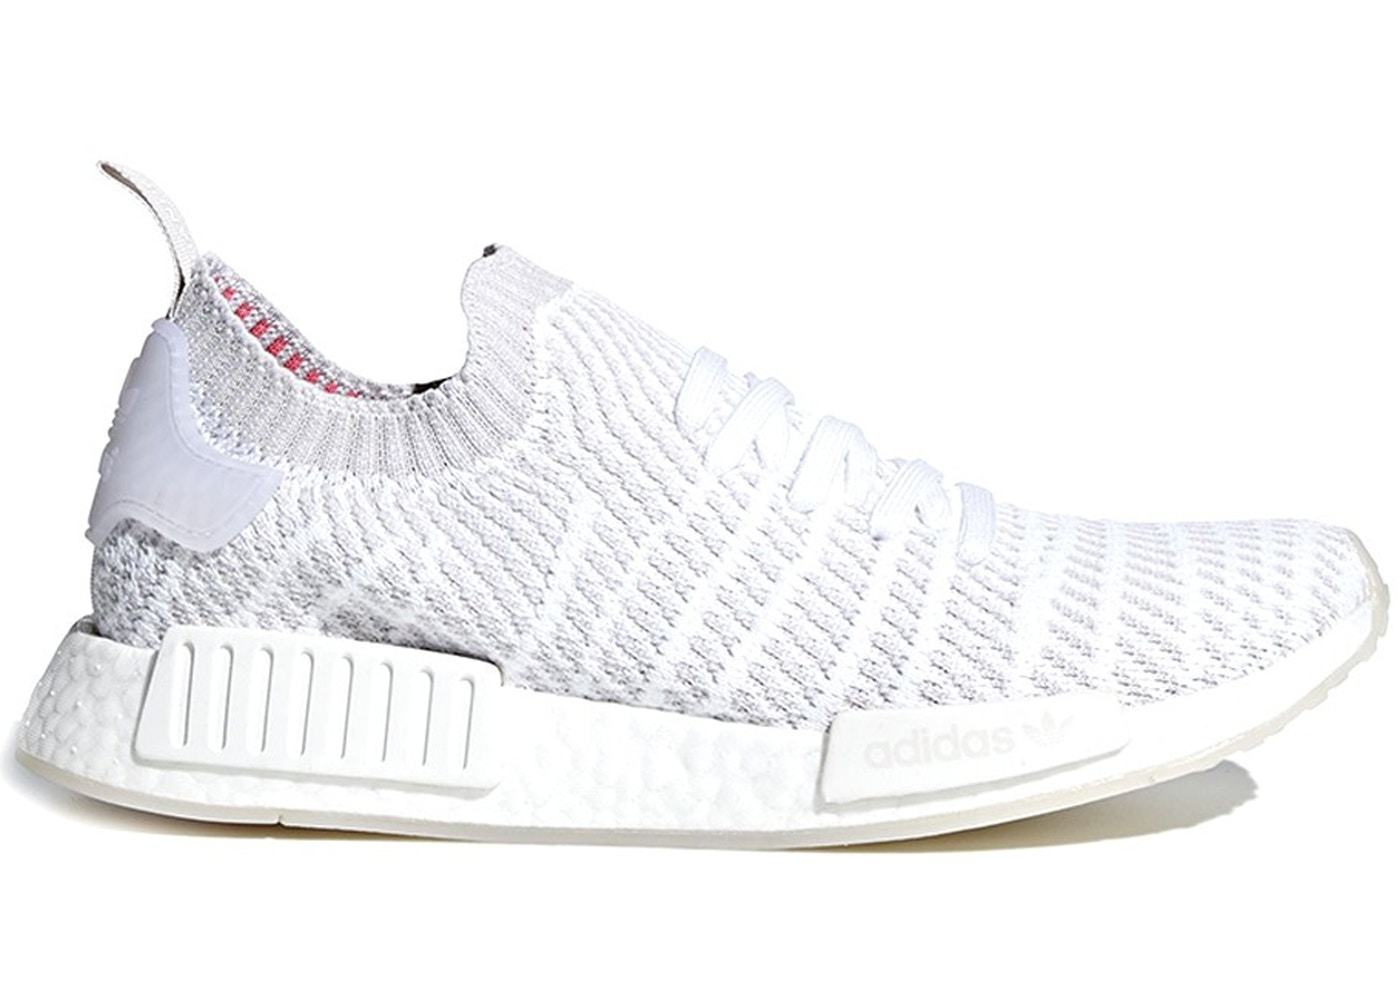 73ea2d56dc268 On Sale  adidas NMD R1 STLT